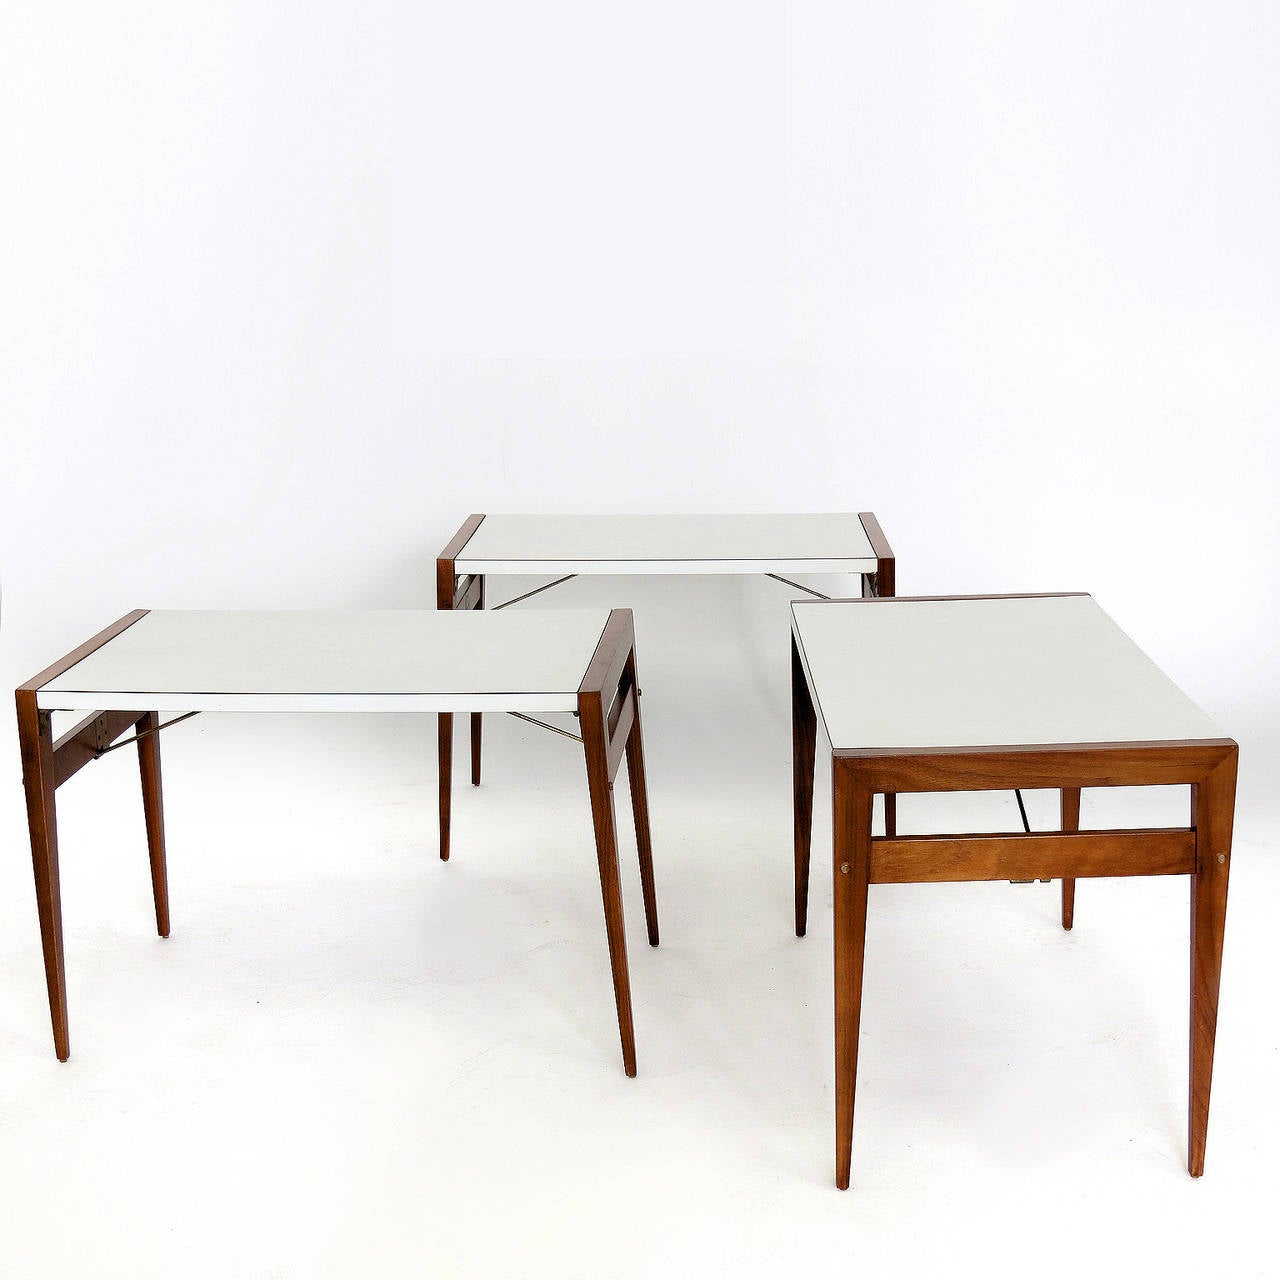 John Keal Coffee Table With Folding Side Tables For Sale